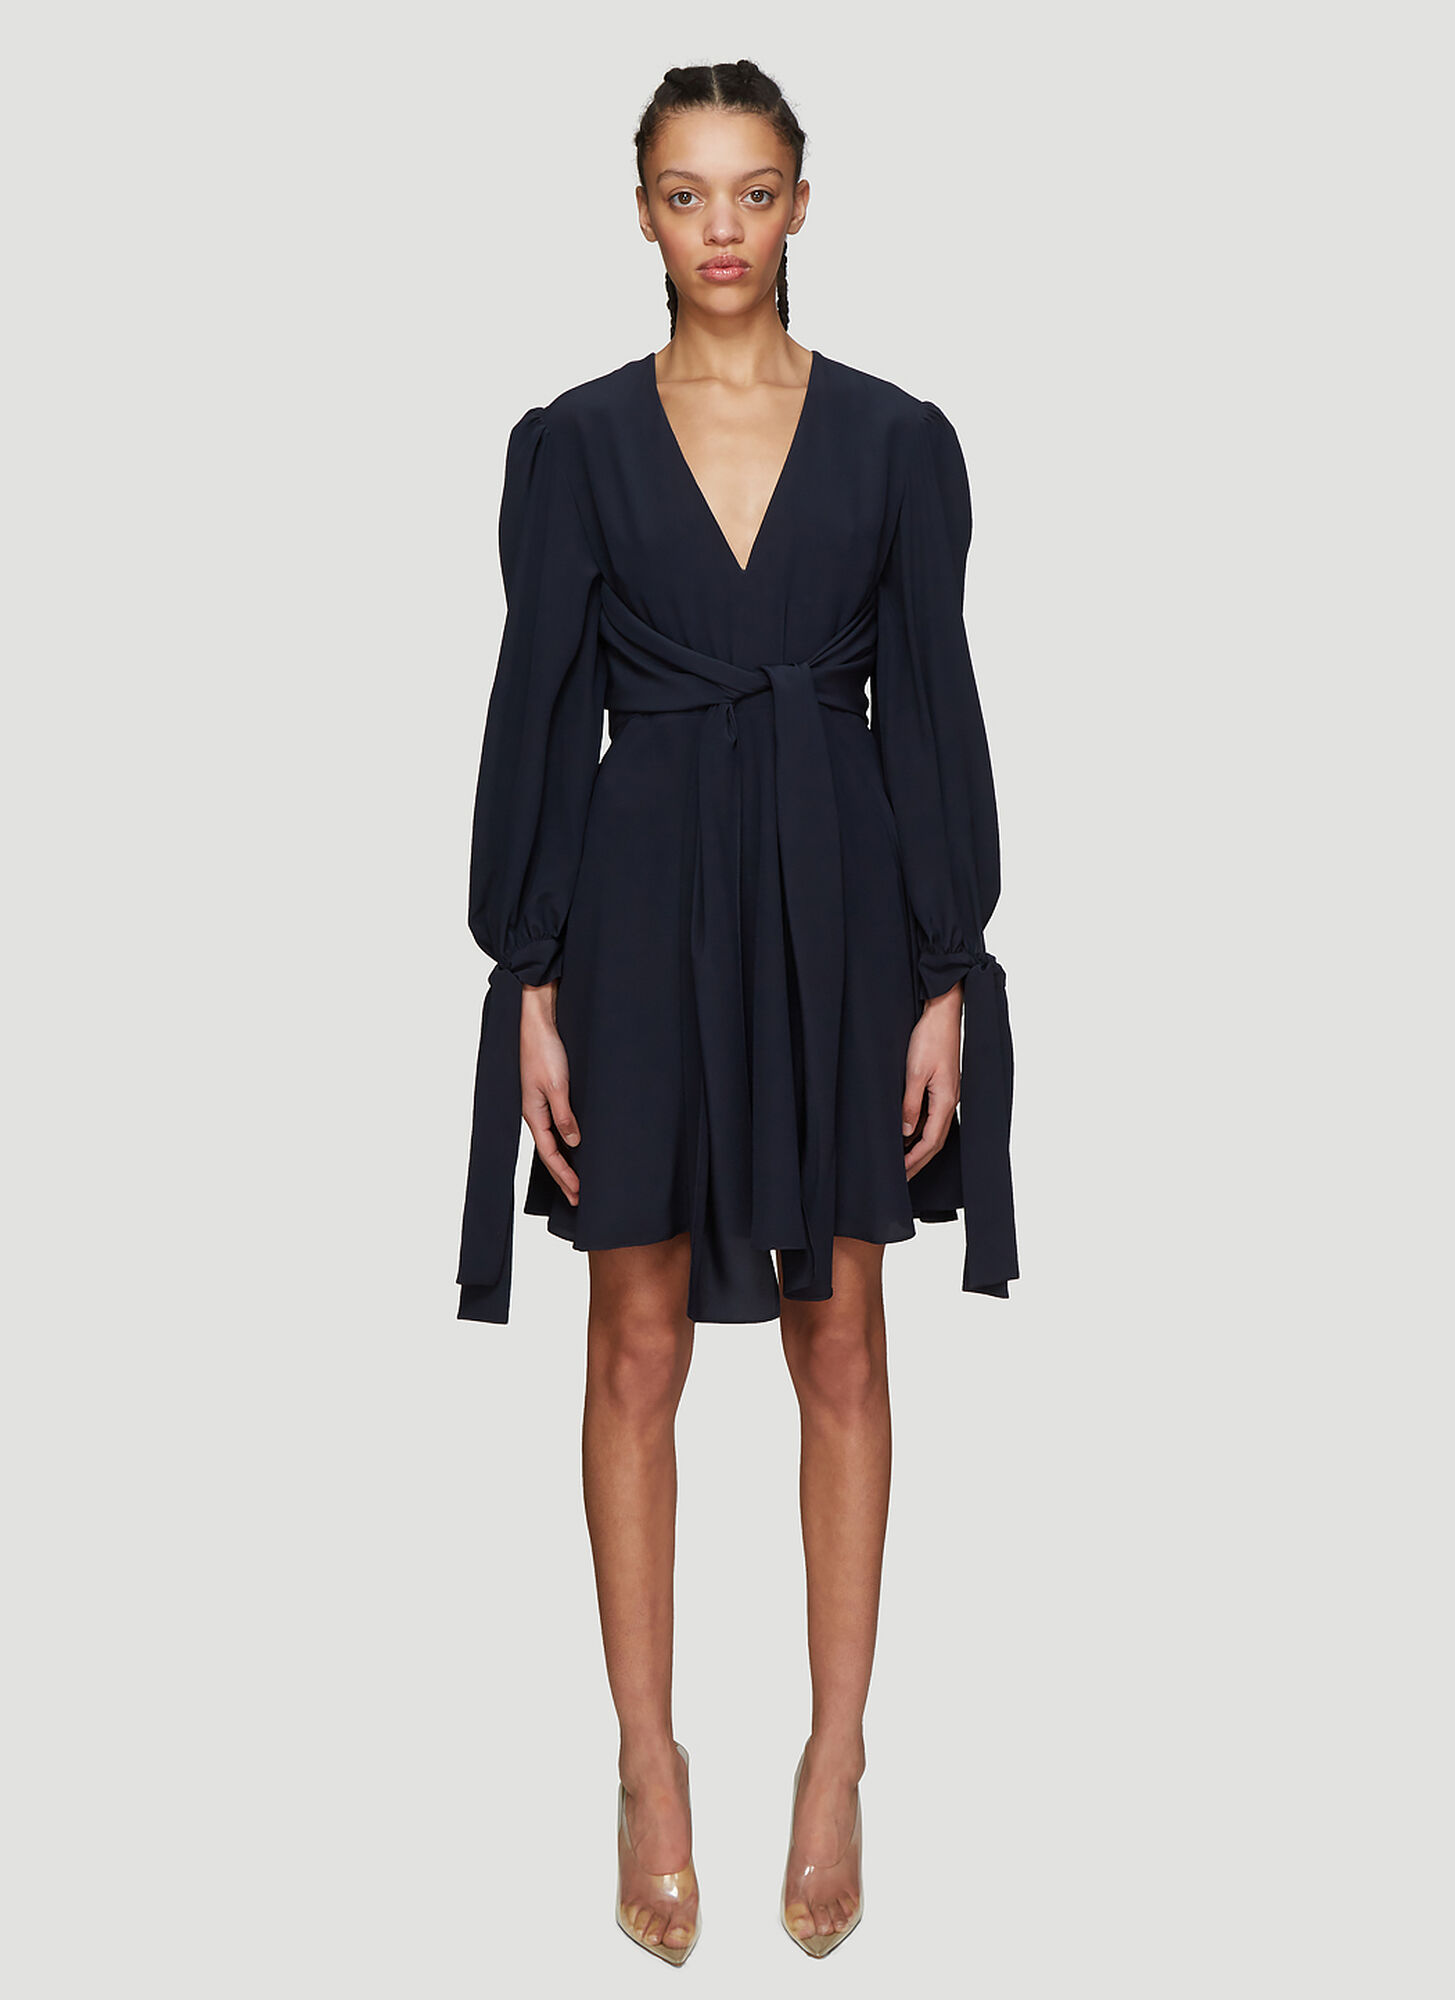 Photo of Stella McCartney Bishop Sleeve Dress in Navy - Stella McCartney Dresses